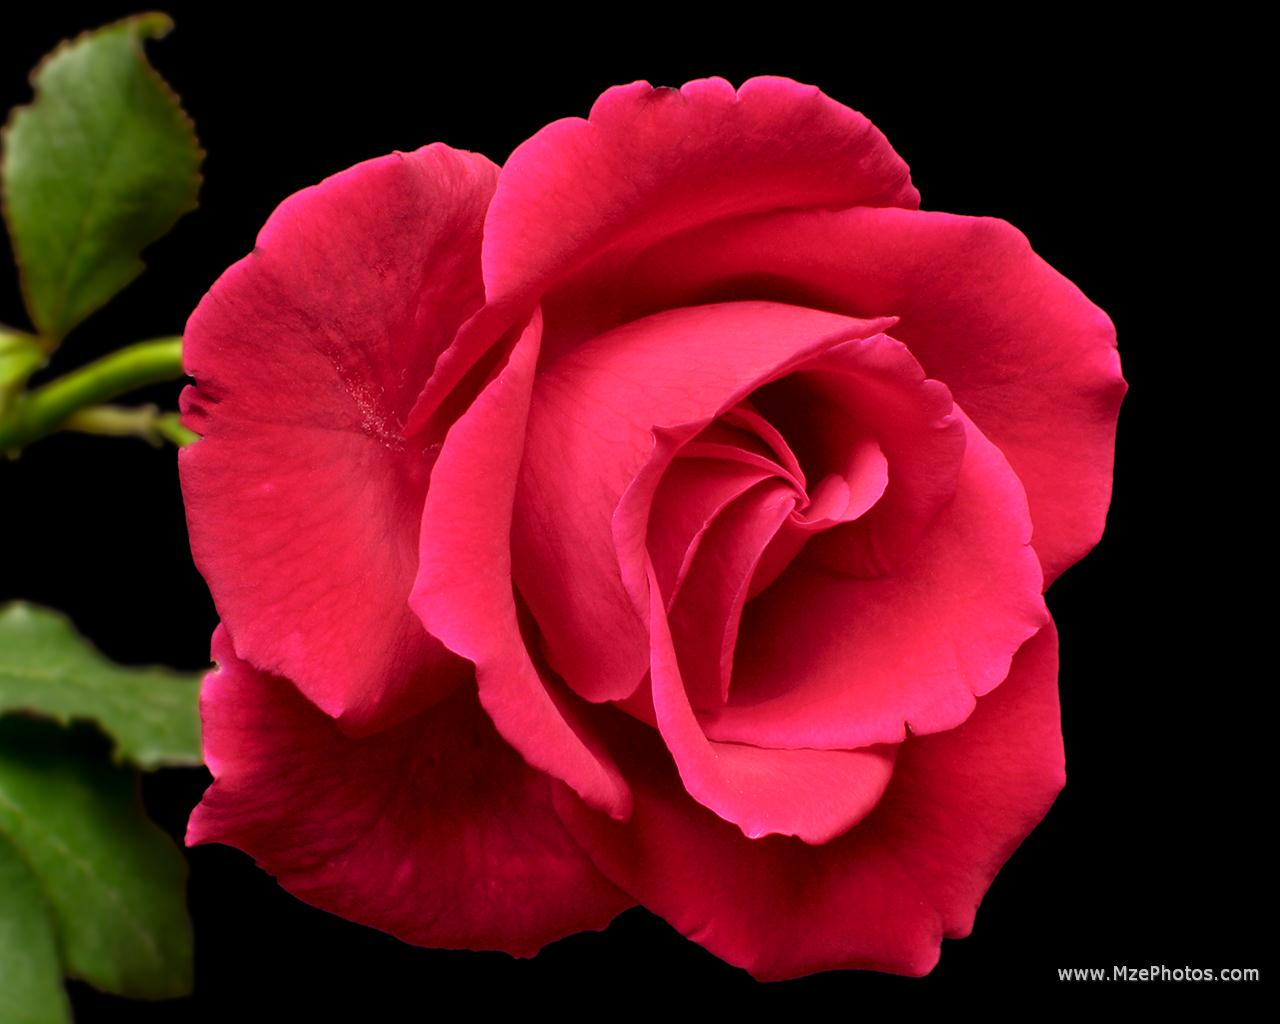 Flower wallpapers flower pictures red rose flowers Beautiful flowers images